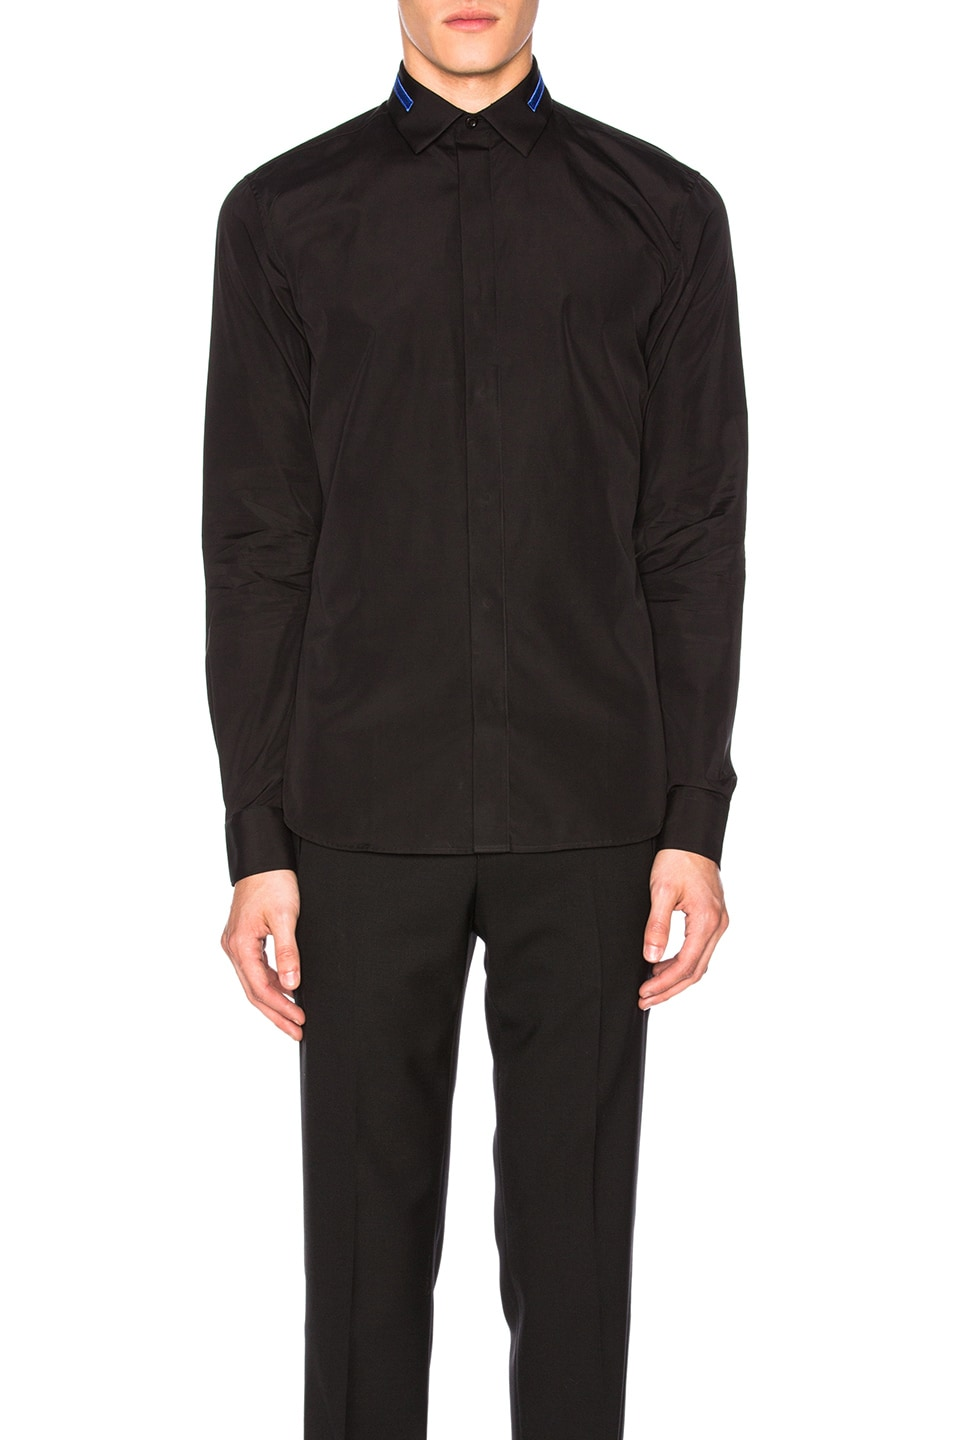 Givenchy Embroidered Collar Shirt In Black Fwrd